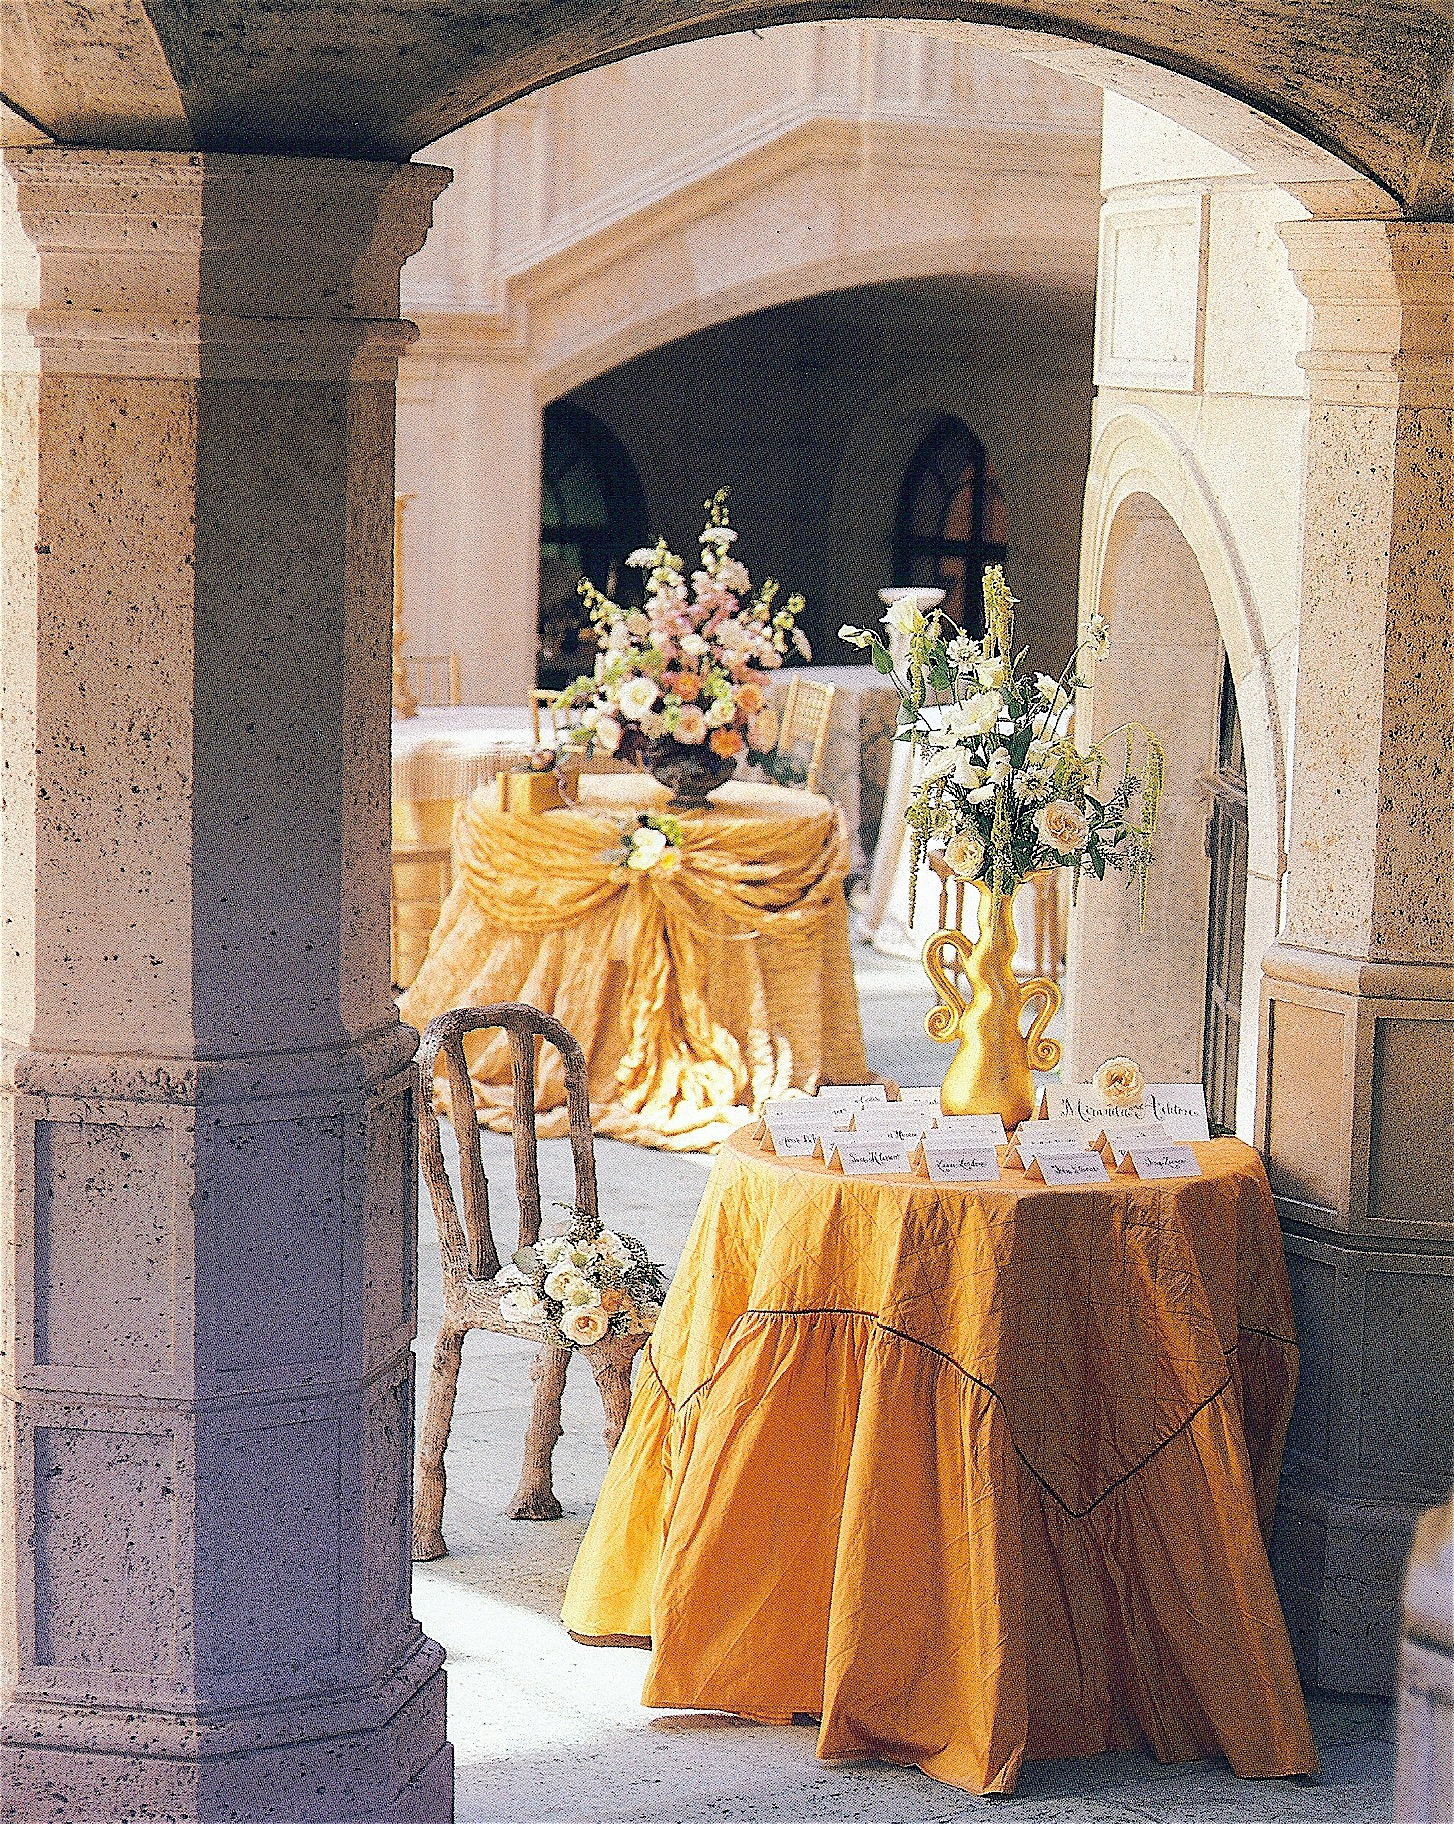 Coffin & King Press - Coffin & King Gilded Vase featured in The Perfect Wedding